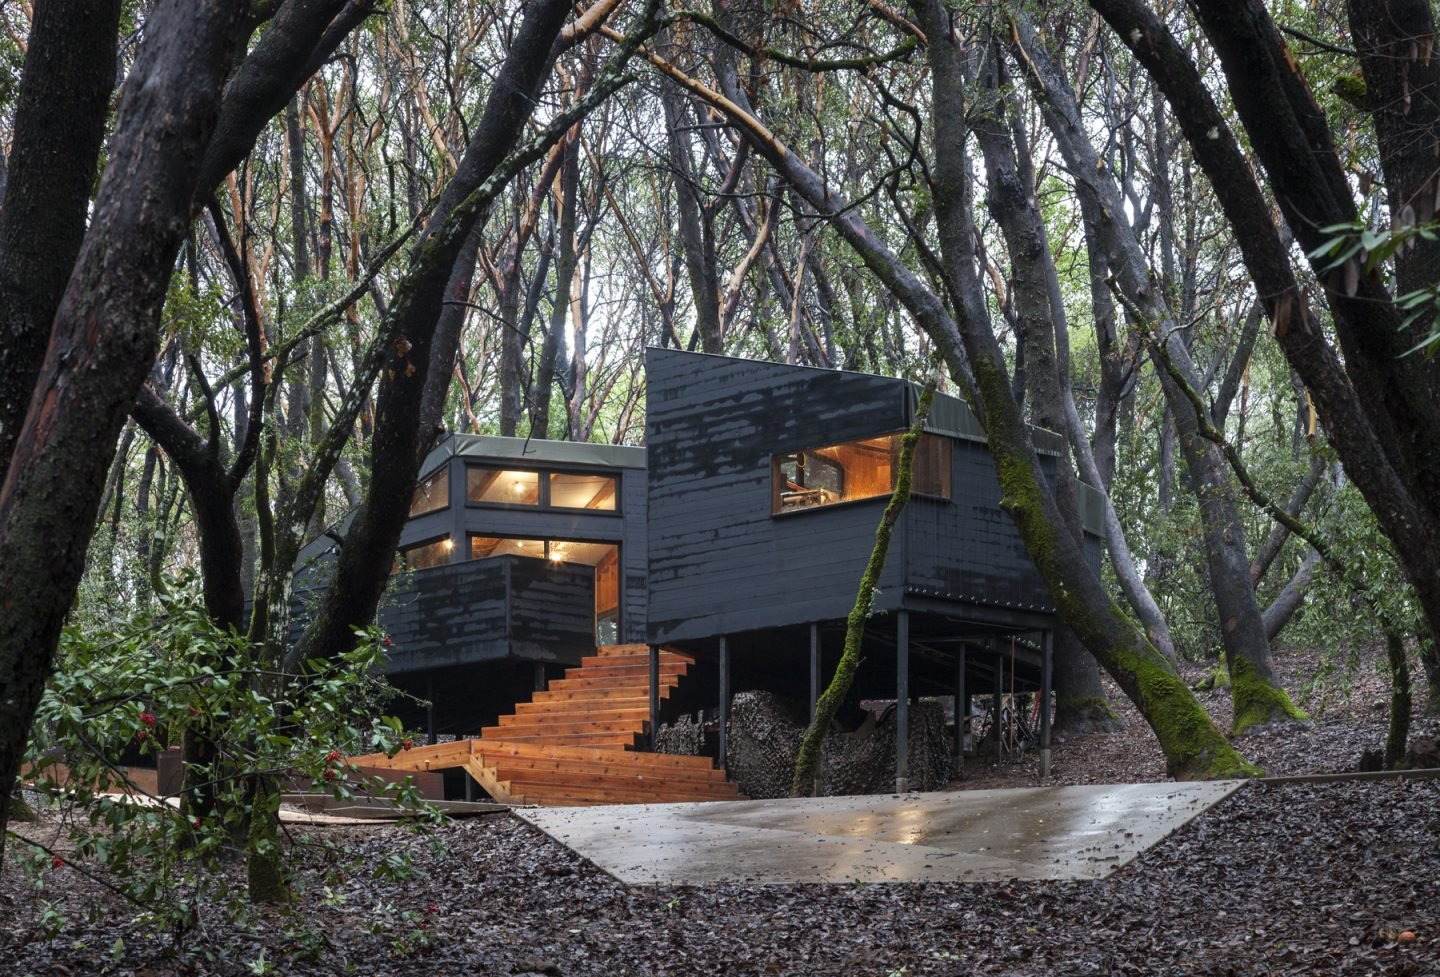 iGNANT-Architecture-Envelope-Architecture-&-Design-Forest-House-04